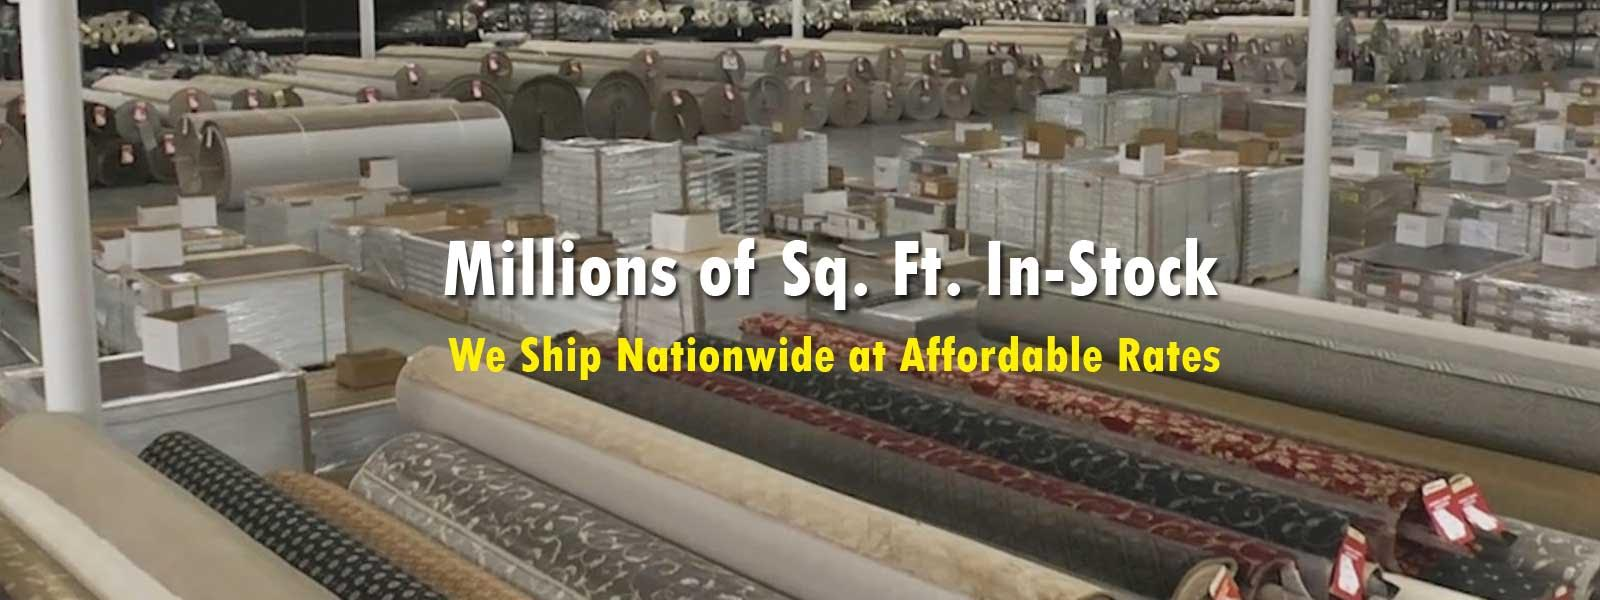 Millions of Square Feet of Flooring In-Stock and Ready to Ship.